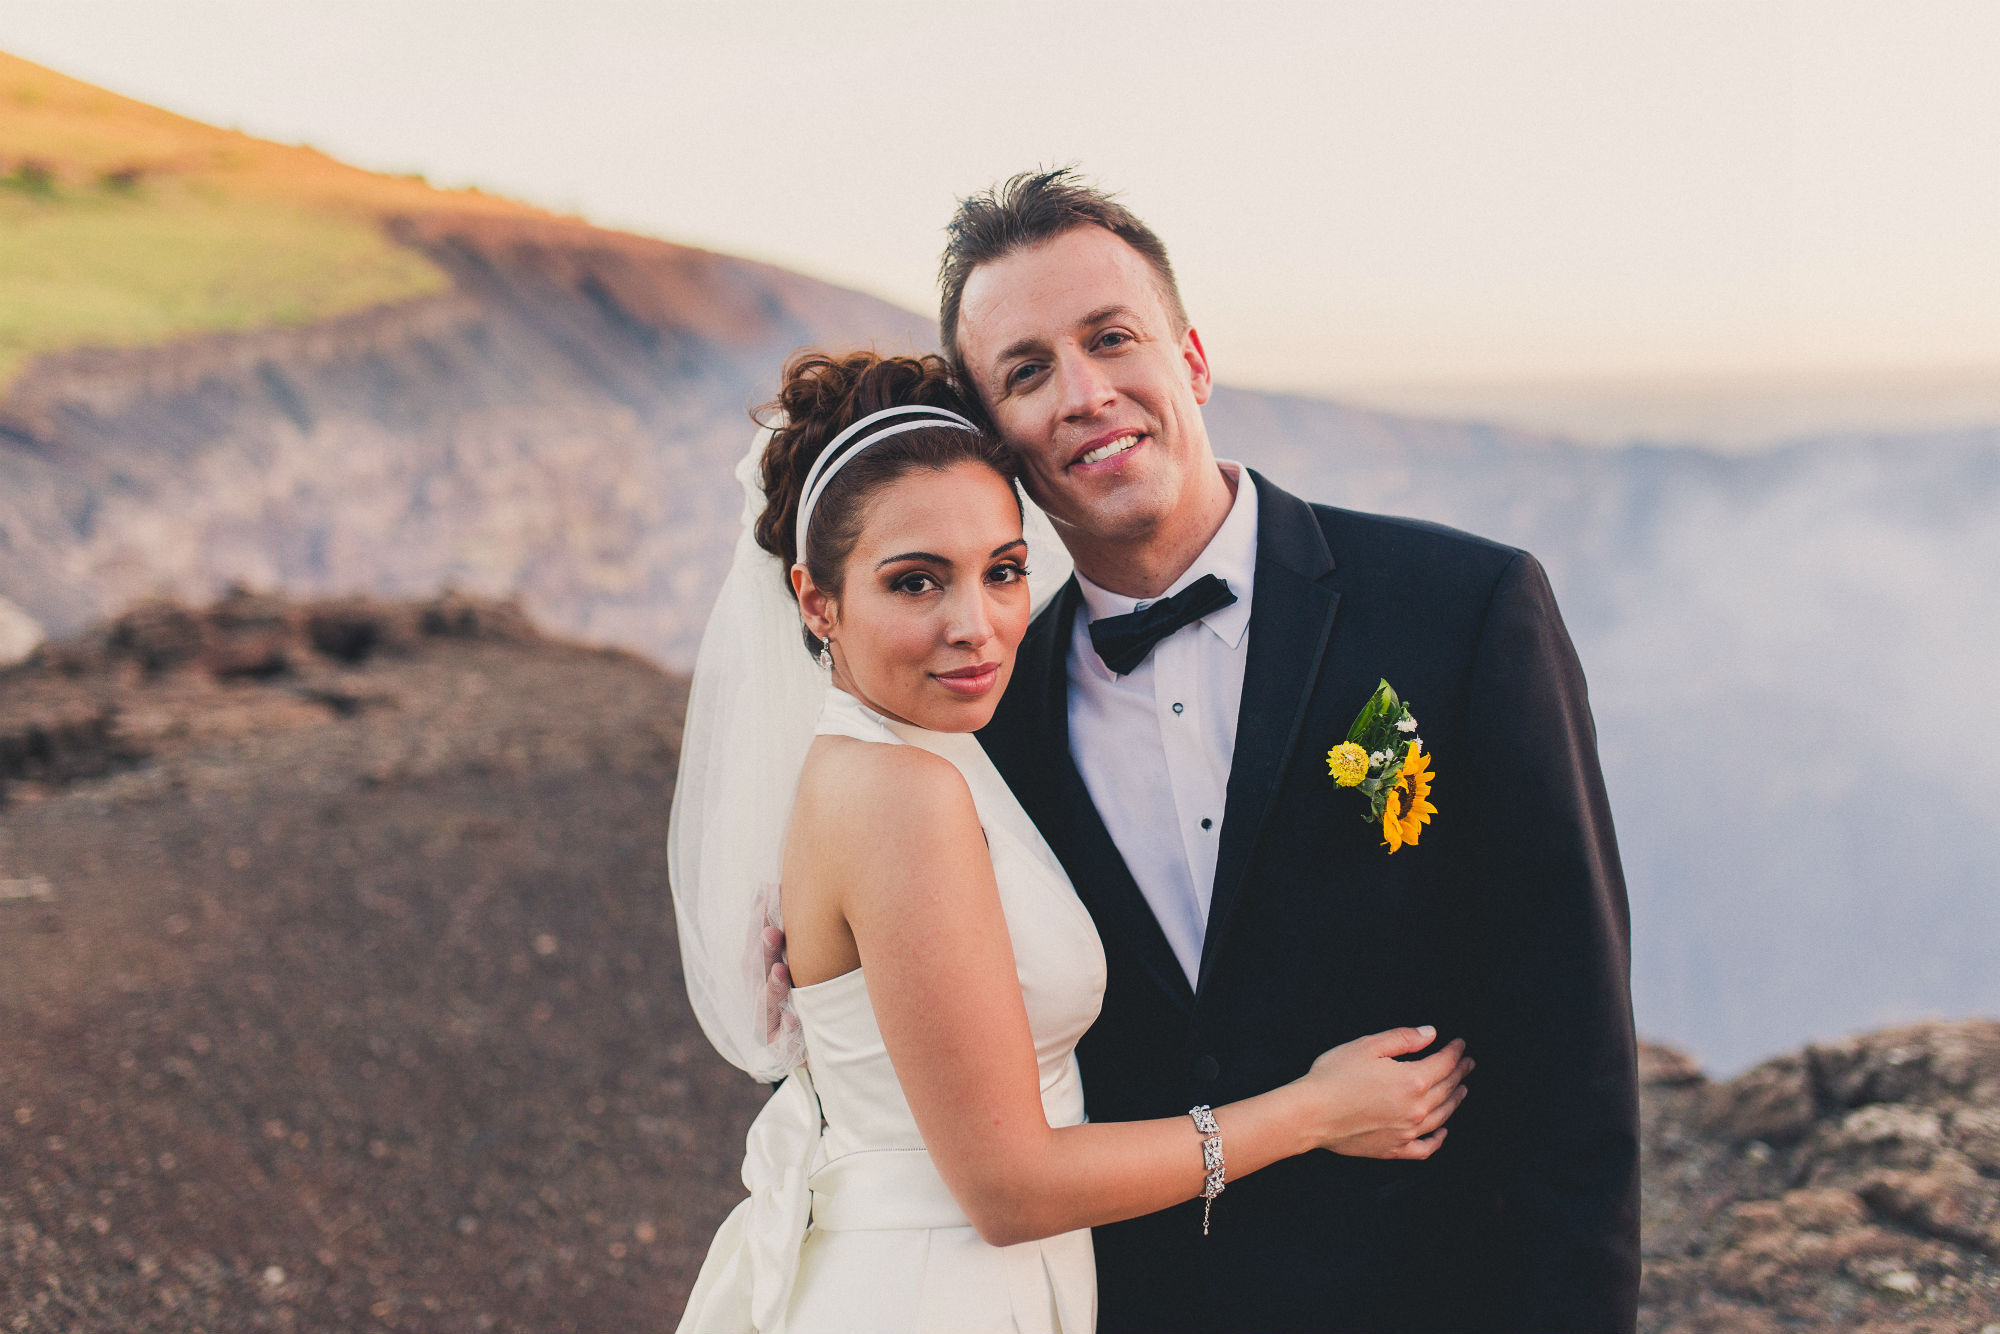 reed timmer et maria molina